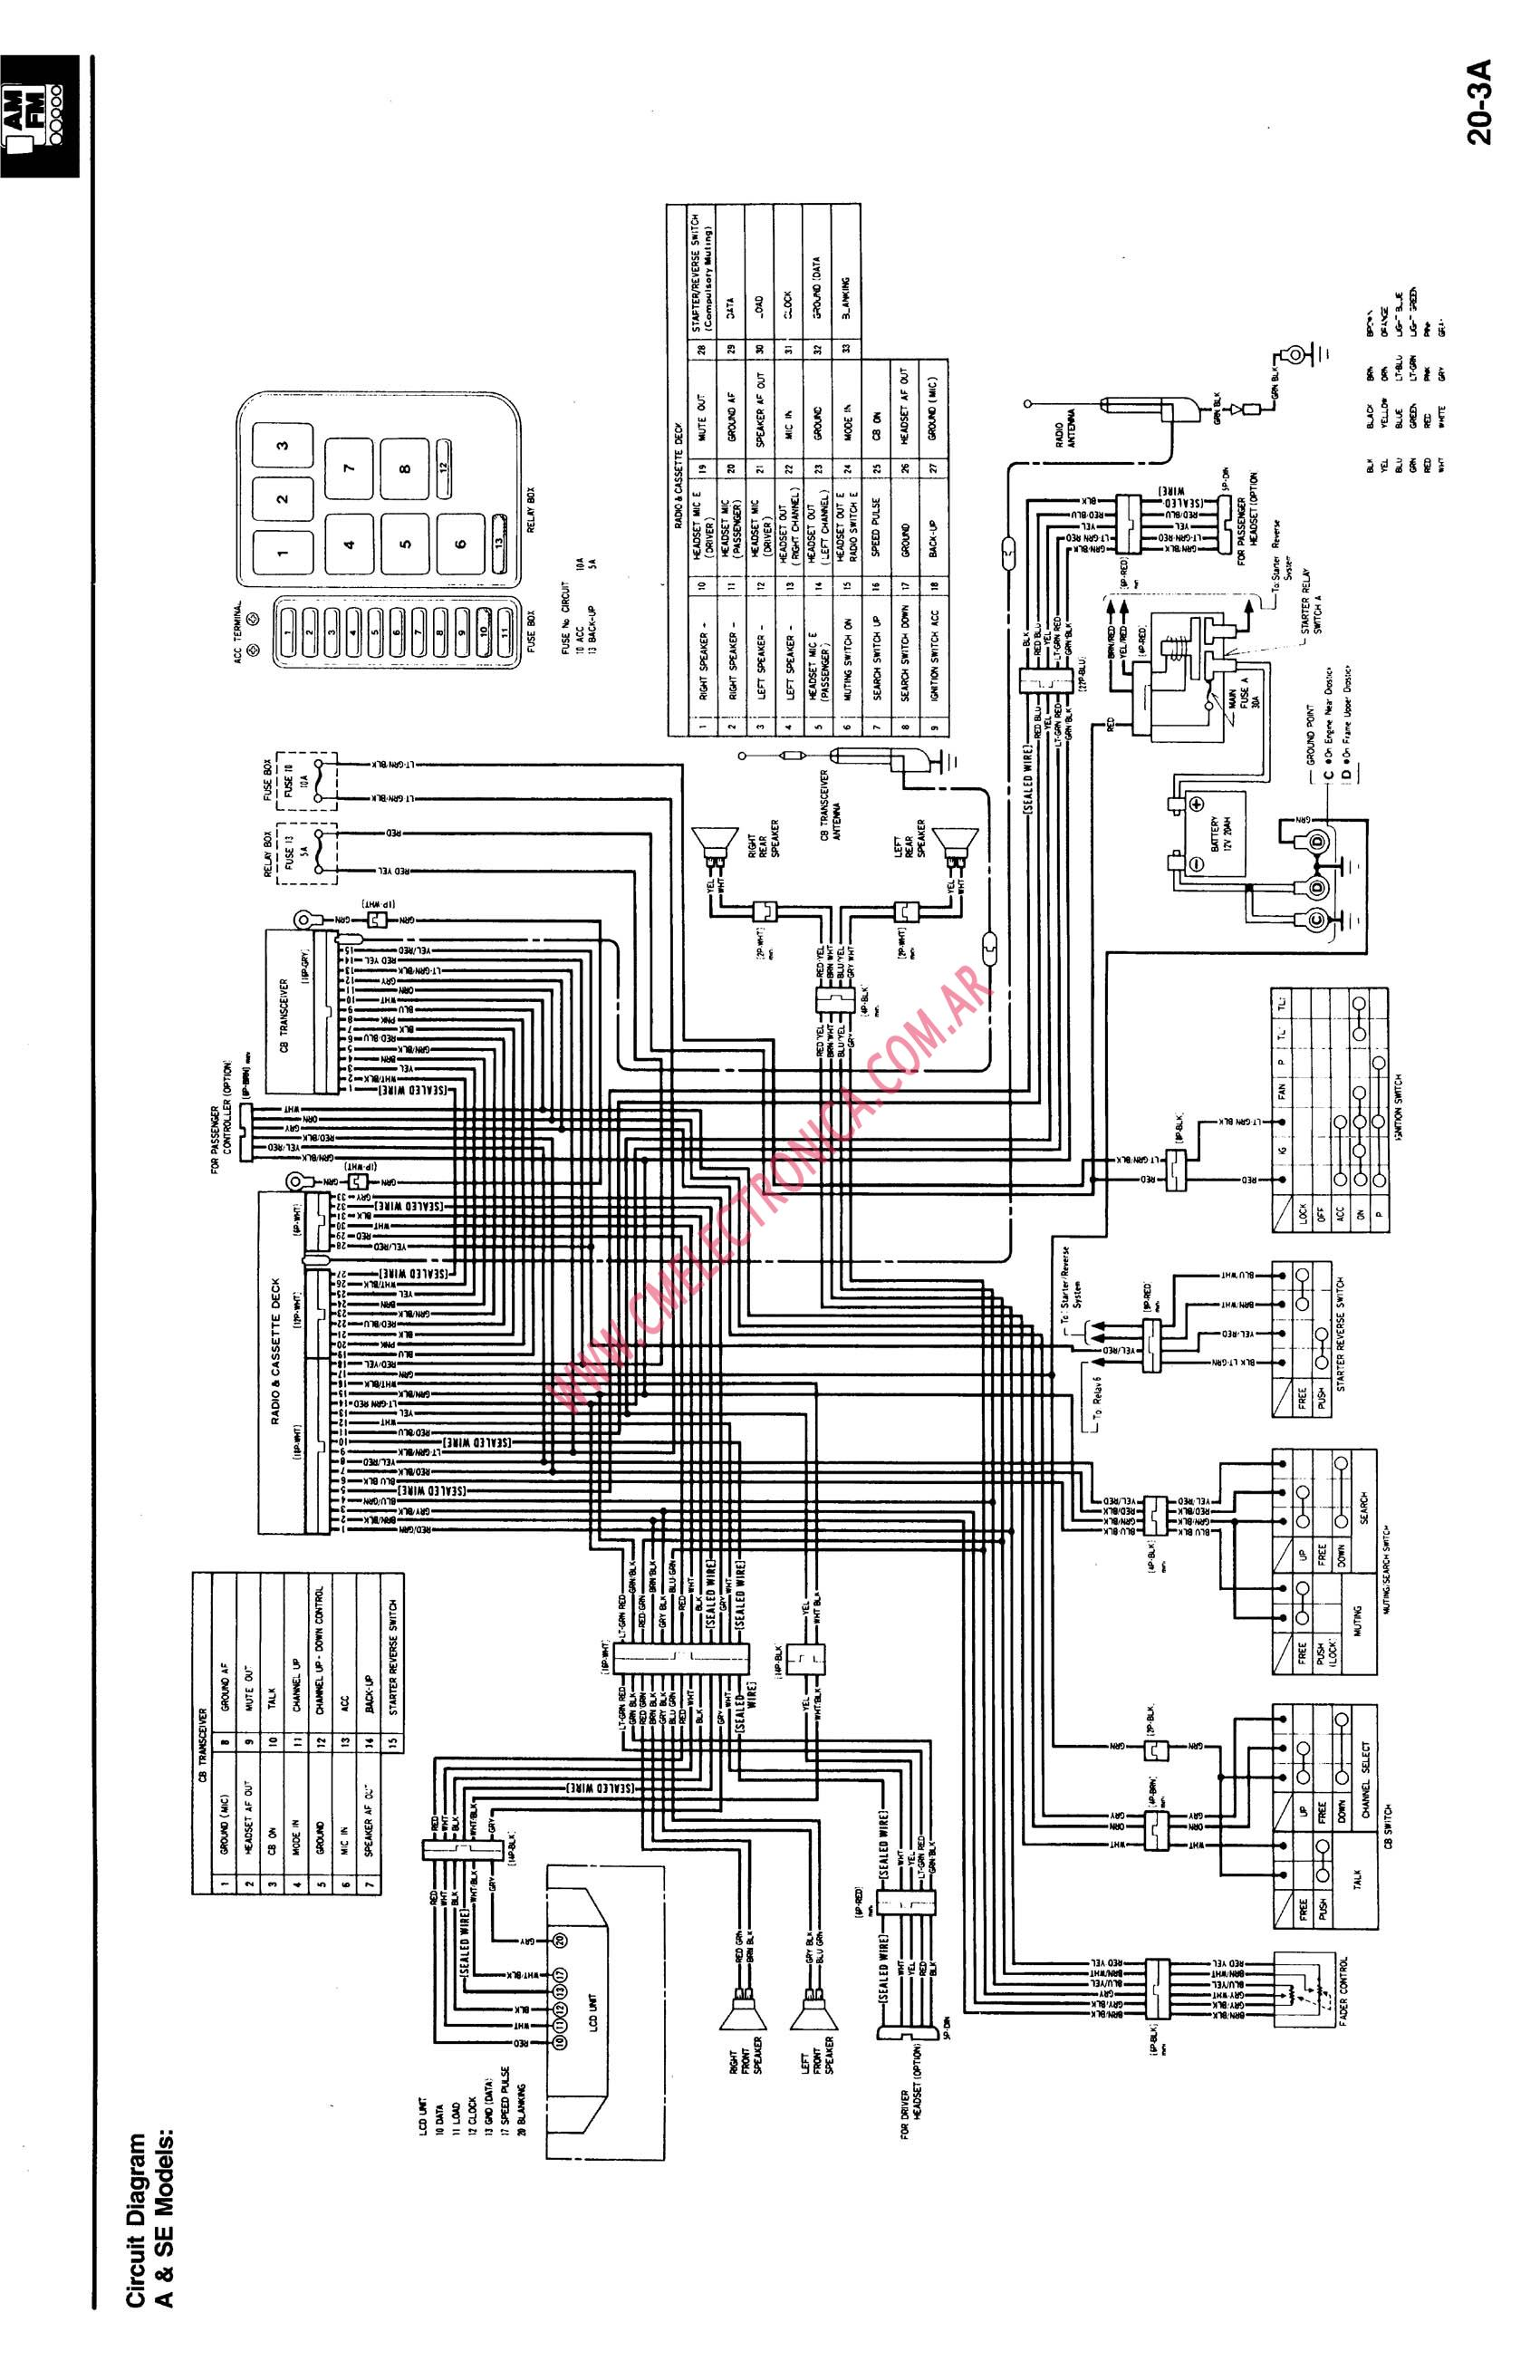 honda gl1500 diagrama honda gl1500 gl1500 wiring diagram at panicattacktreatment.co